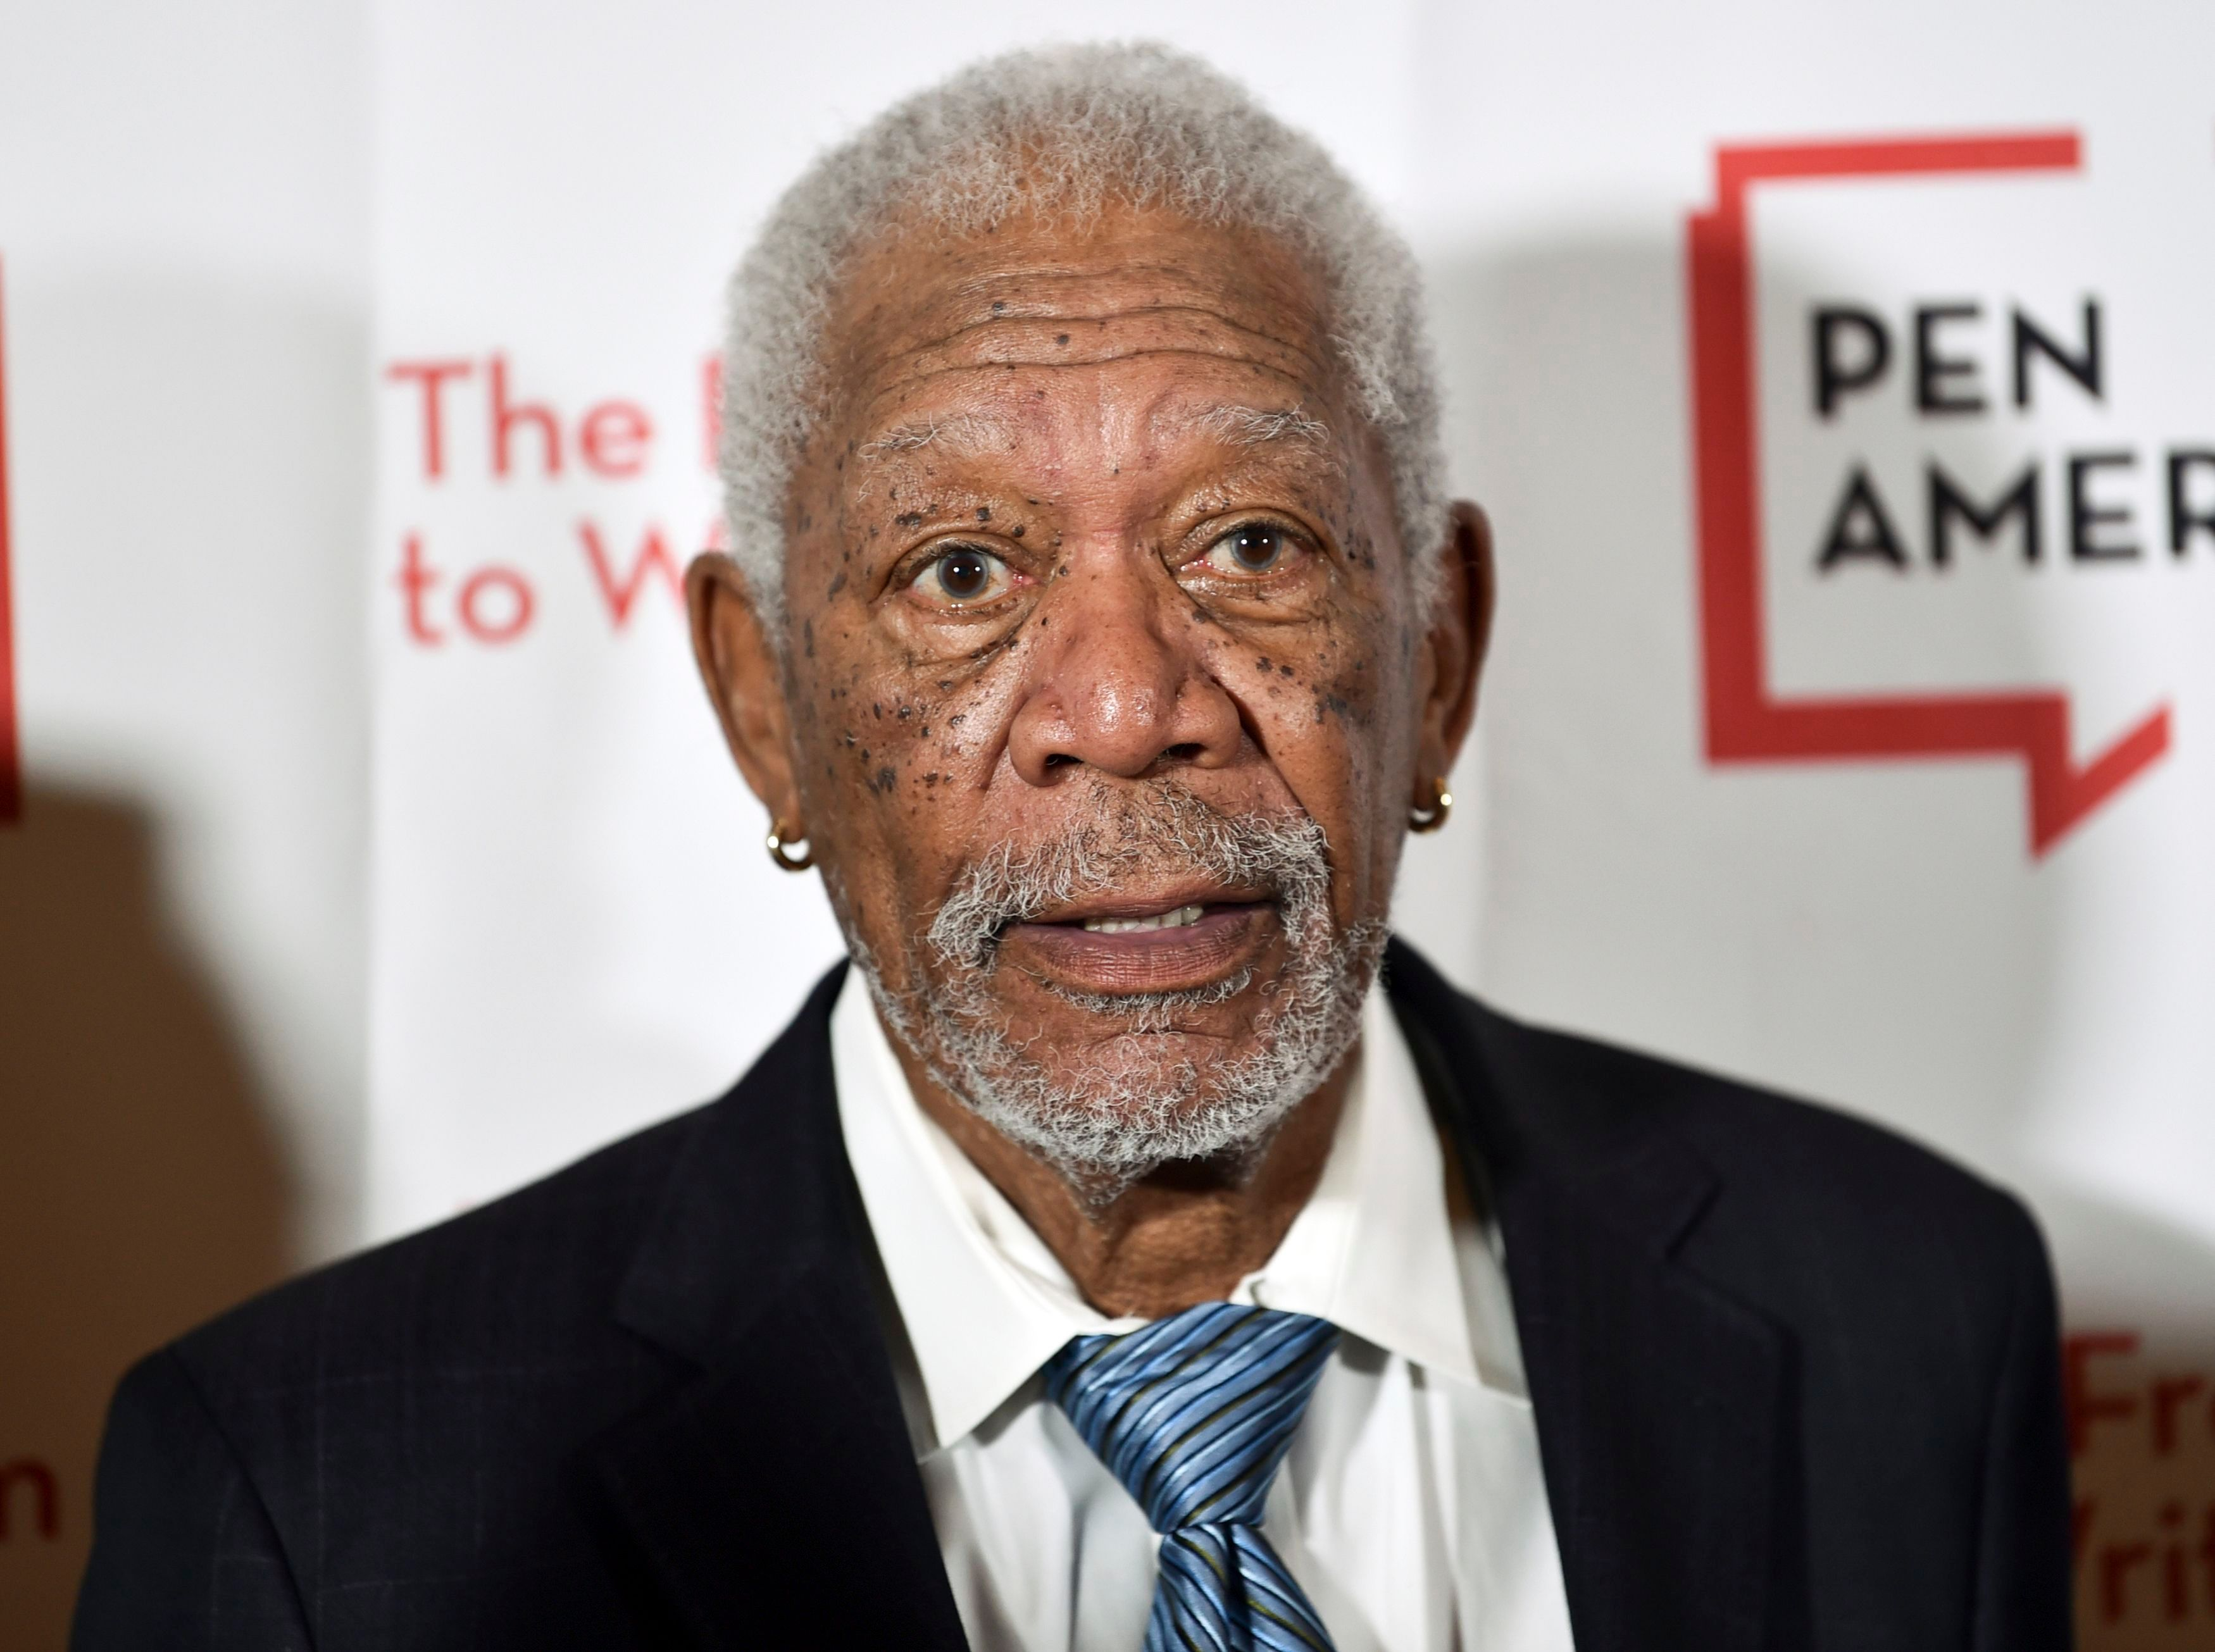 Morgan Freeman2018 PEN Literary Gala, New York, USA - 22 May 2018